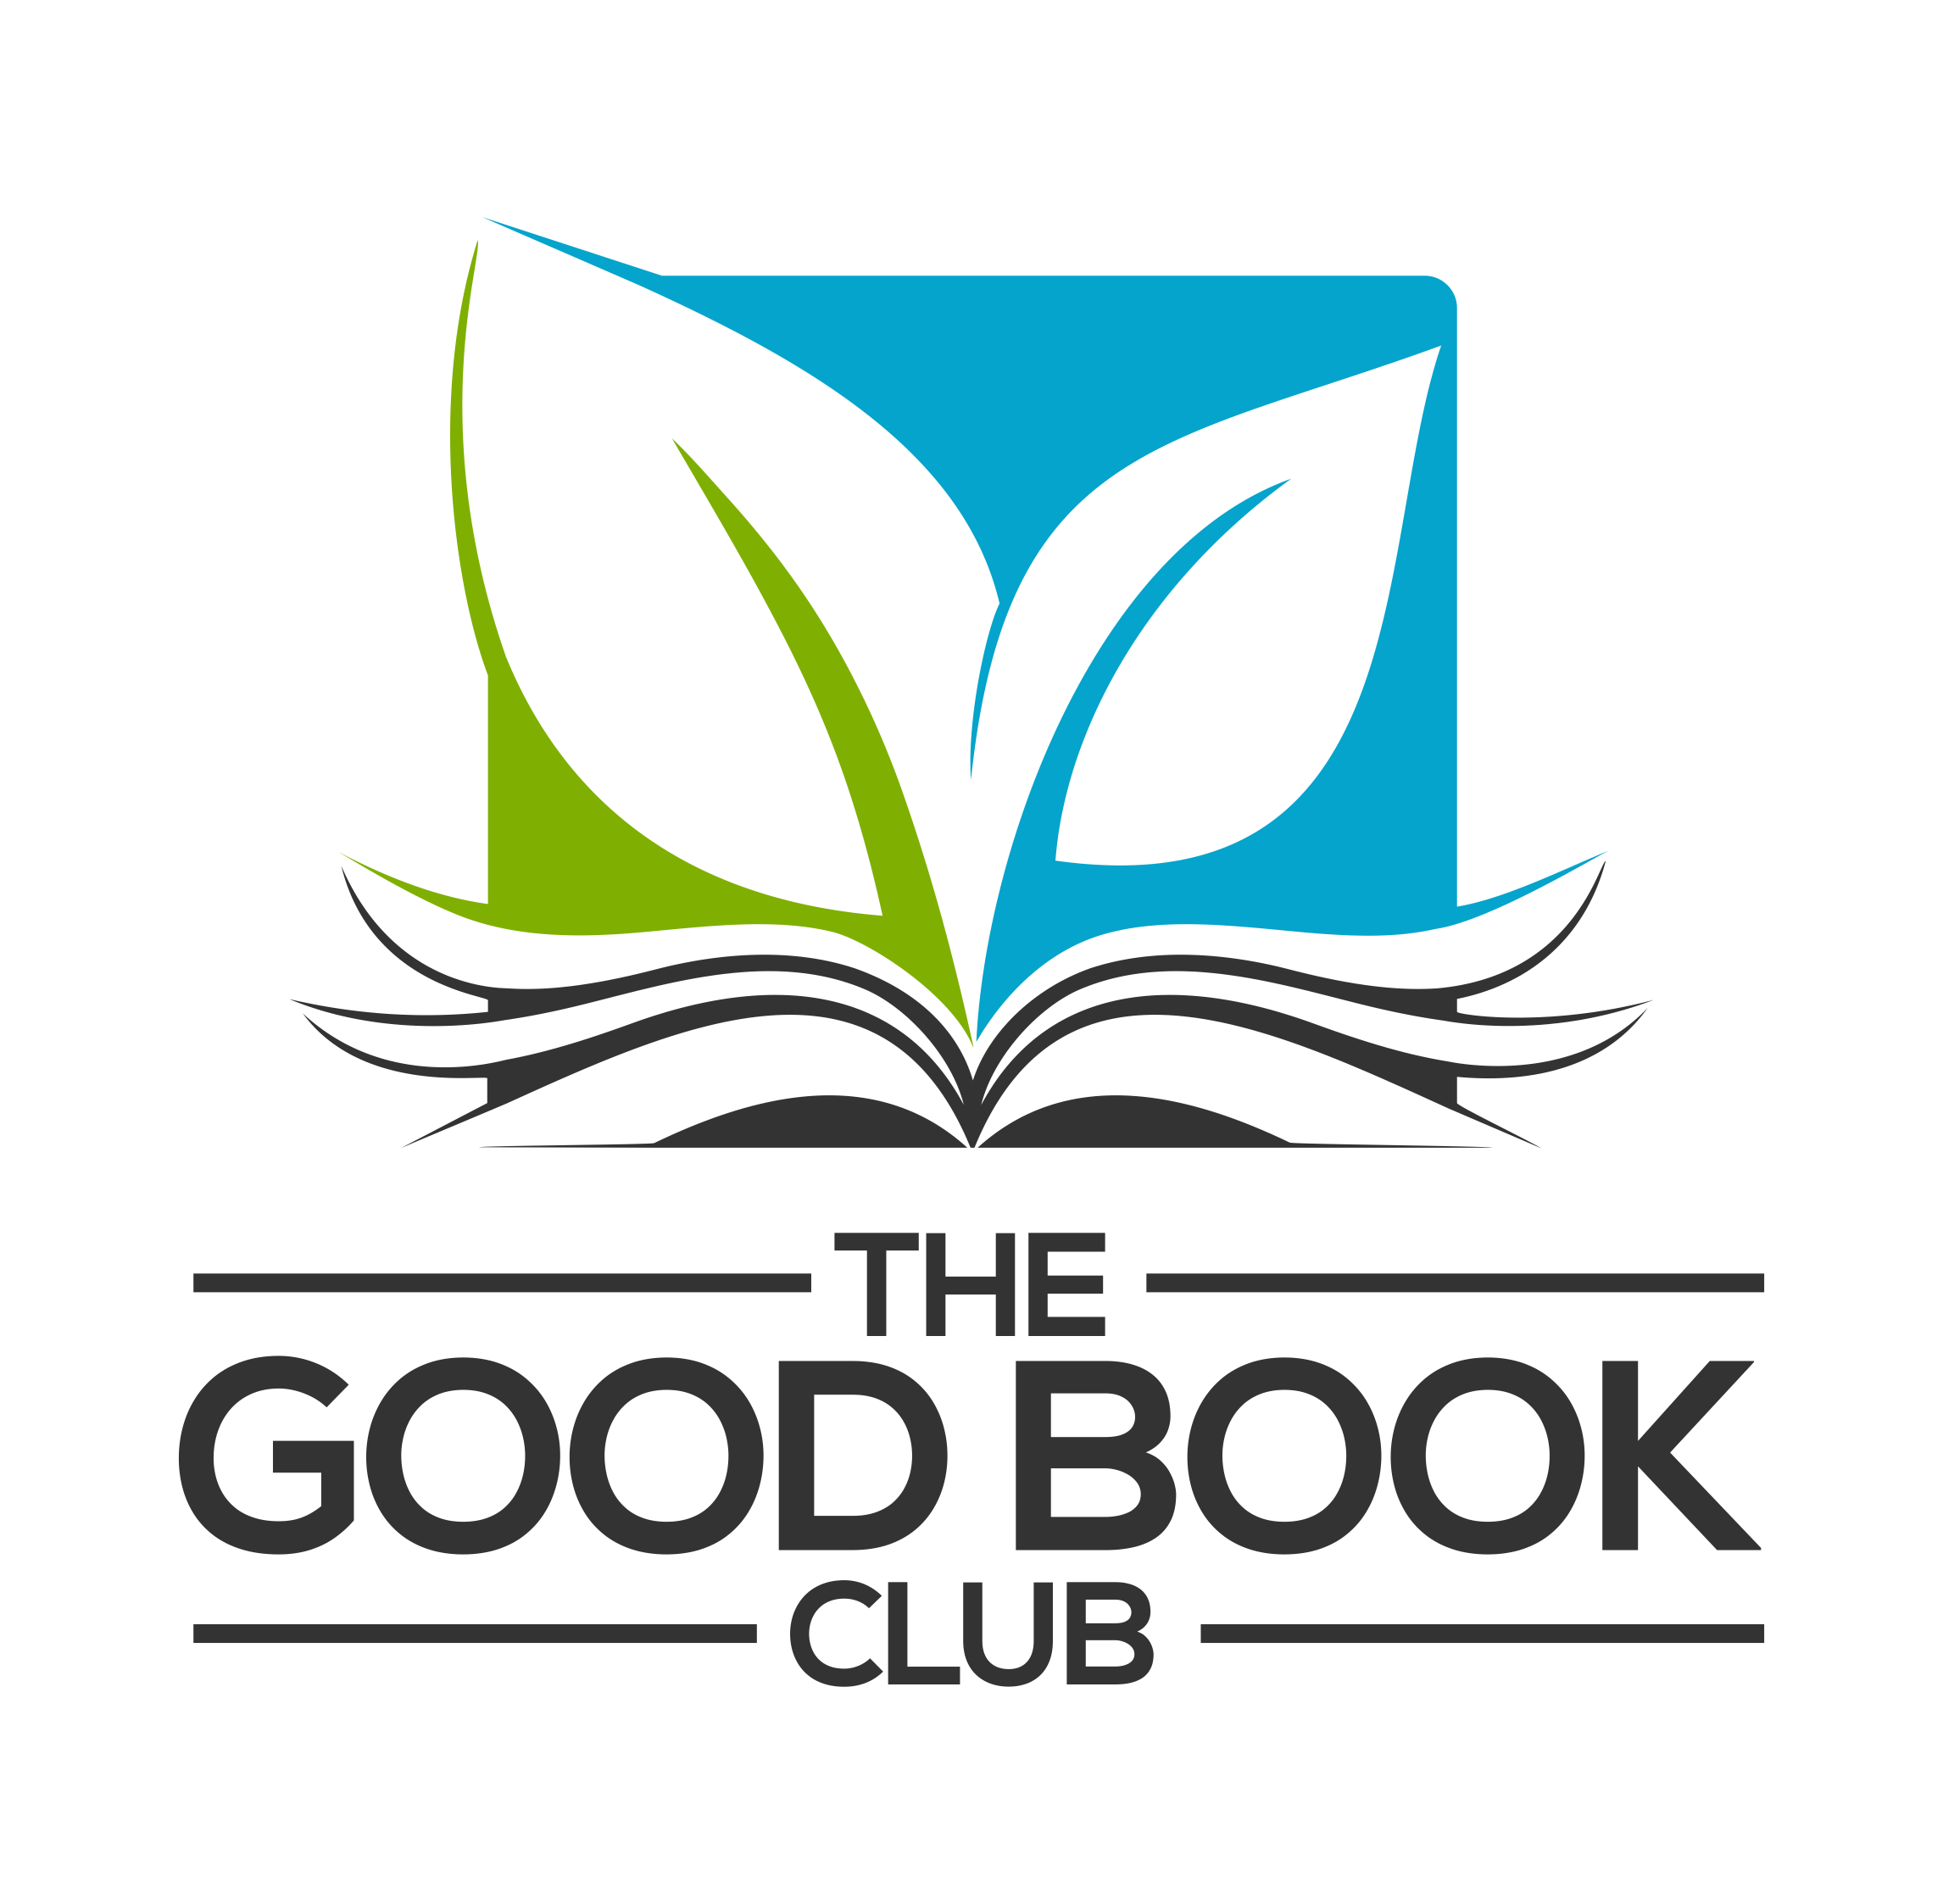 http://s3.amazonaws.com/dfc_attachments/images/3500654/THEGOODBOOKCLUB.png